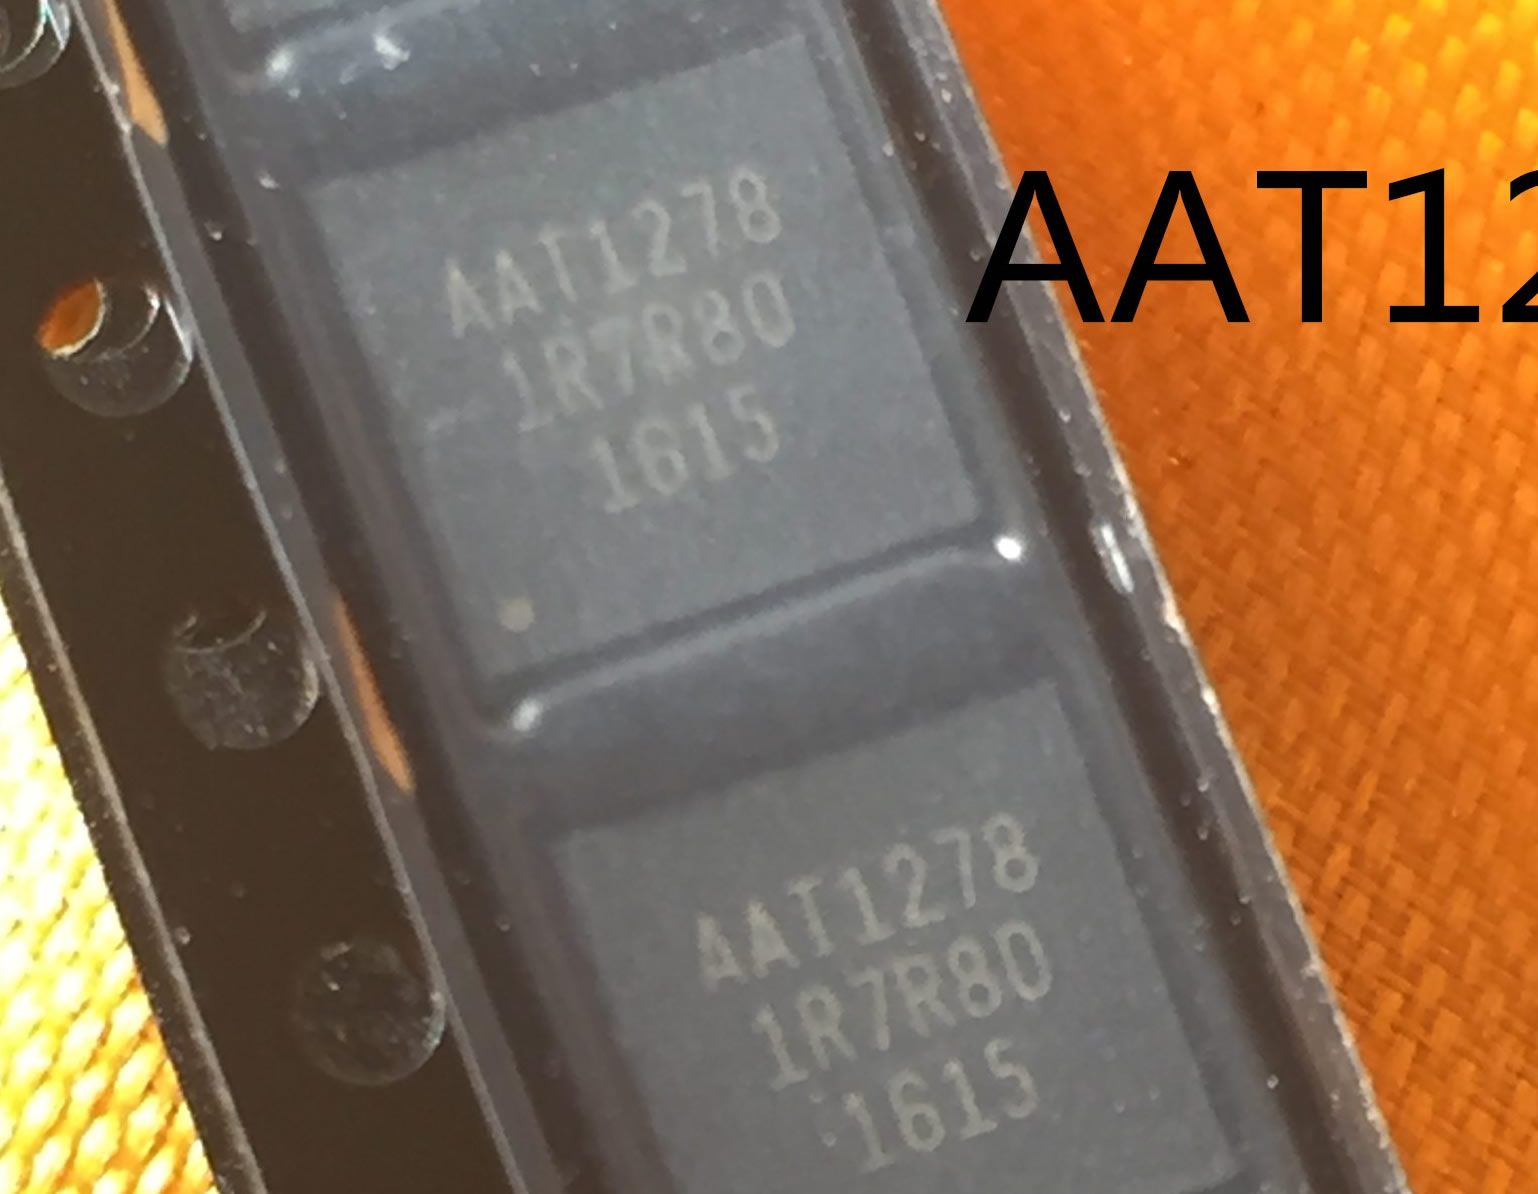 AAT1278 AAT1278IUP-T1 QFN48 5pcs/lot